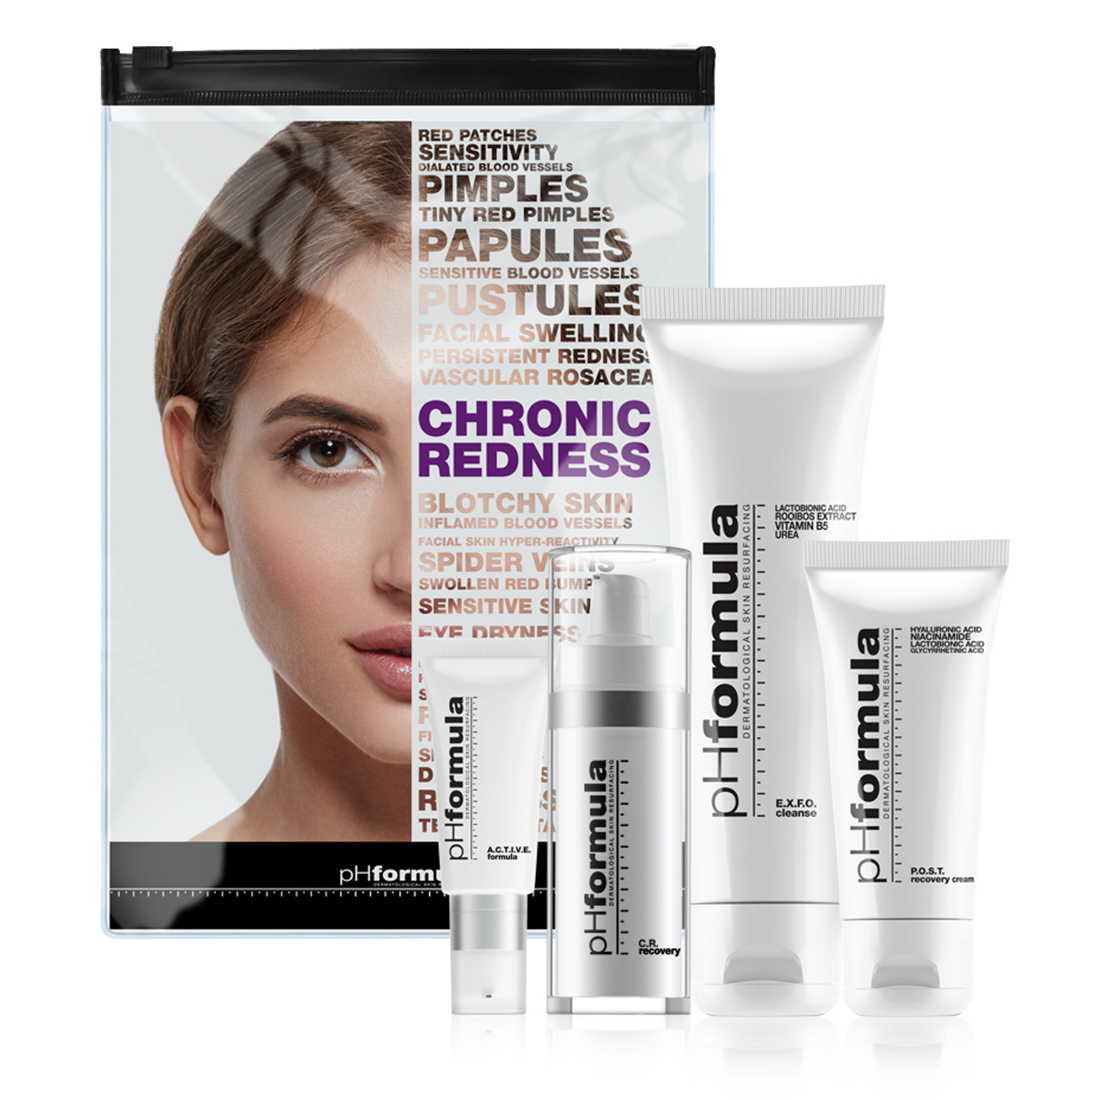 CR Resurfacing Kit